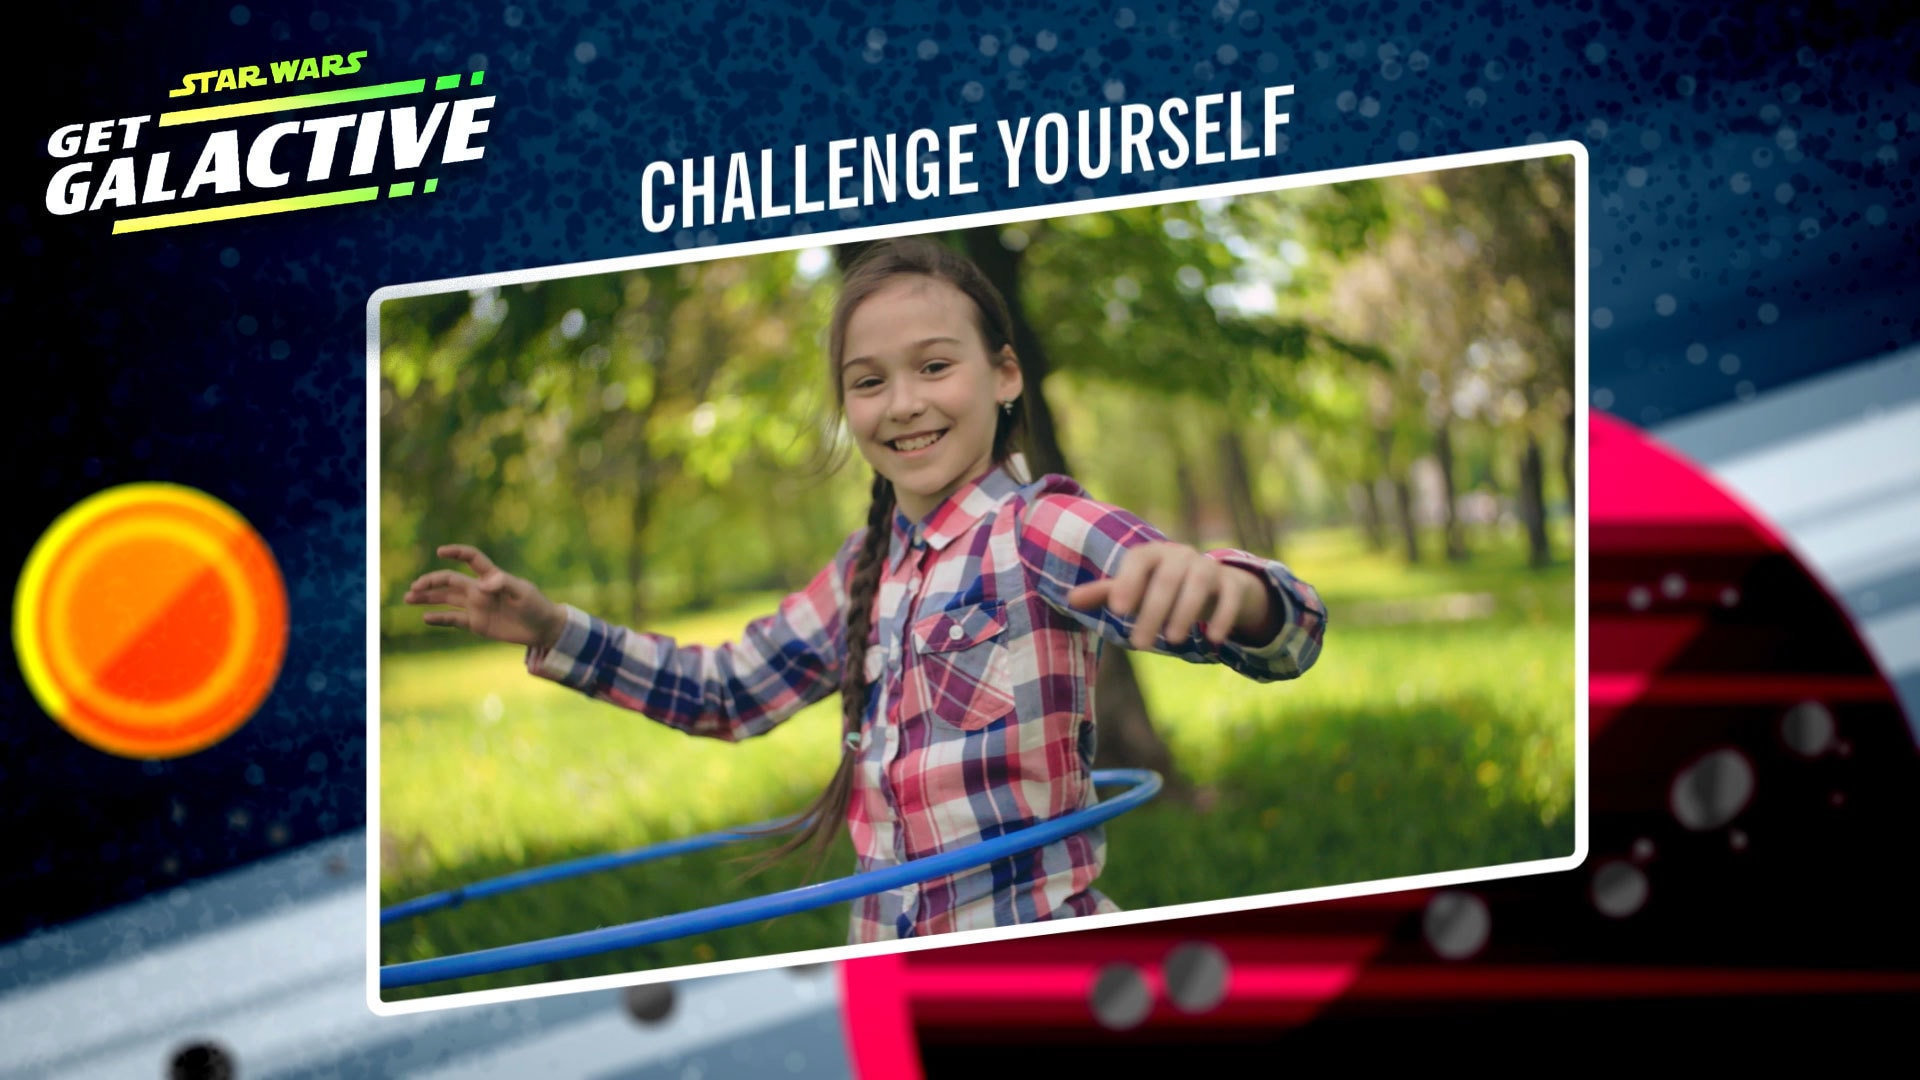 Challenging Yourself | Star Wars: Get Galactive